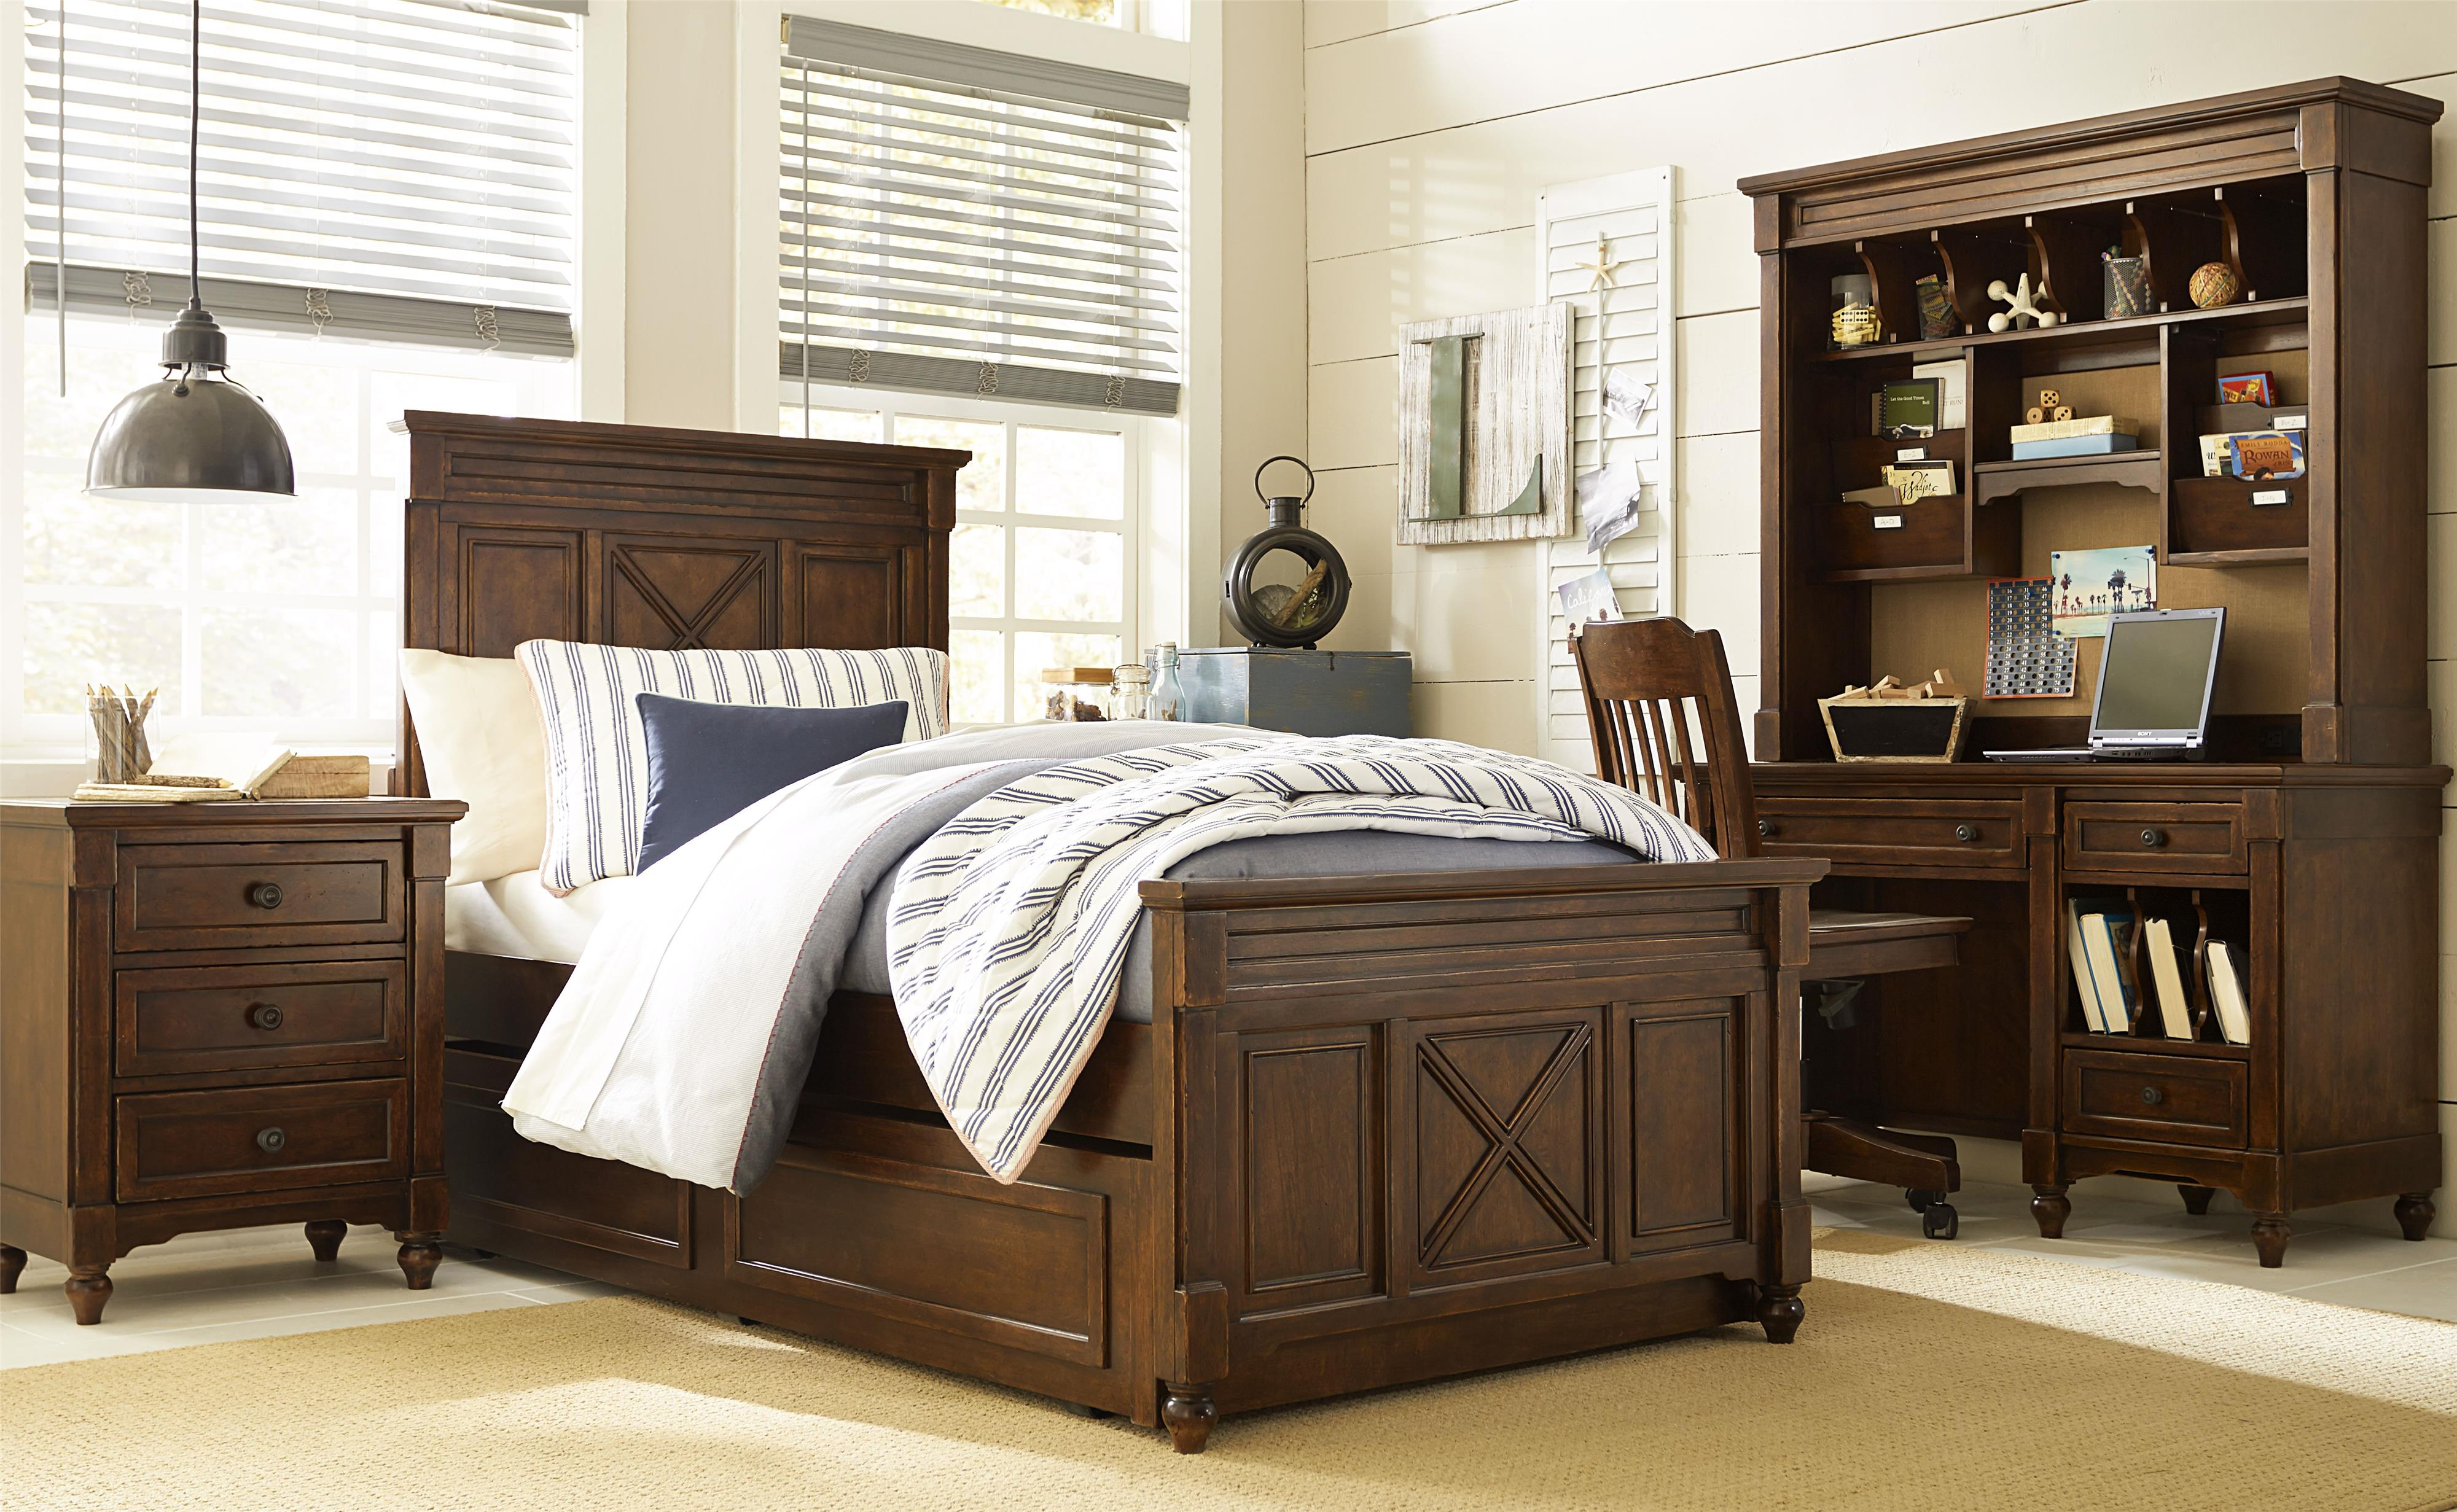 Legacy Classic Kids Big Sur by Wendy Bellissimo Bedroom Group - Item Number: 4920 F Bedroom Group 3